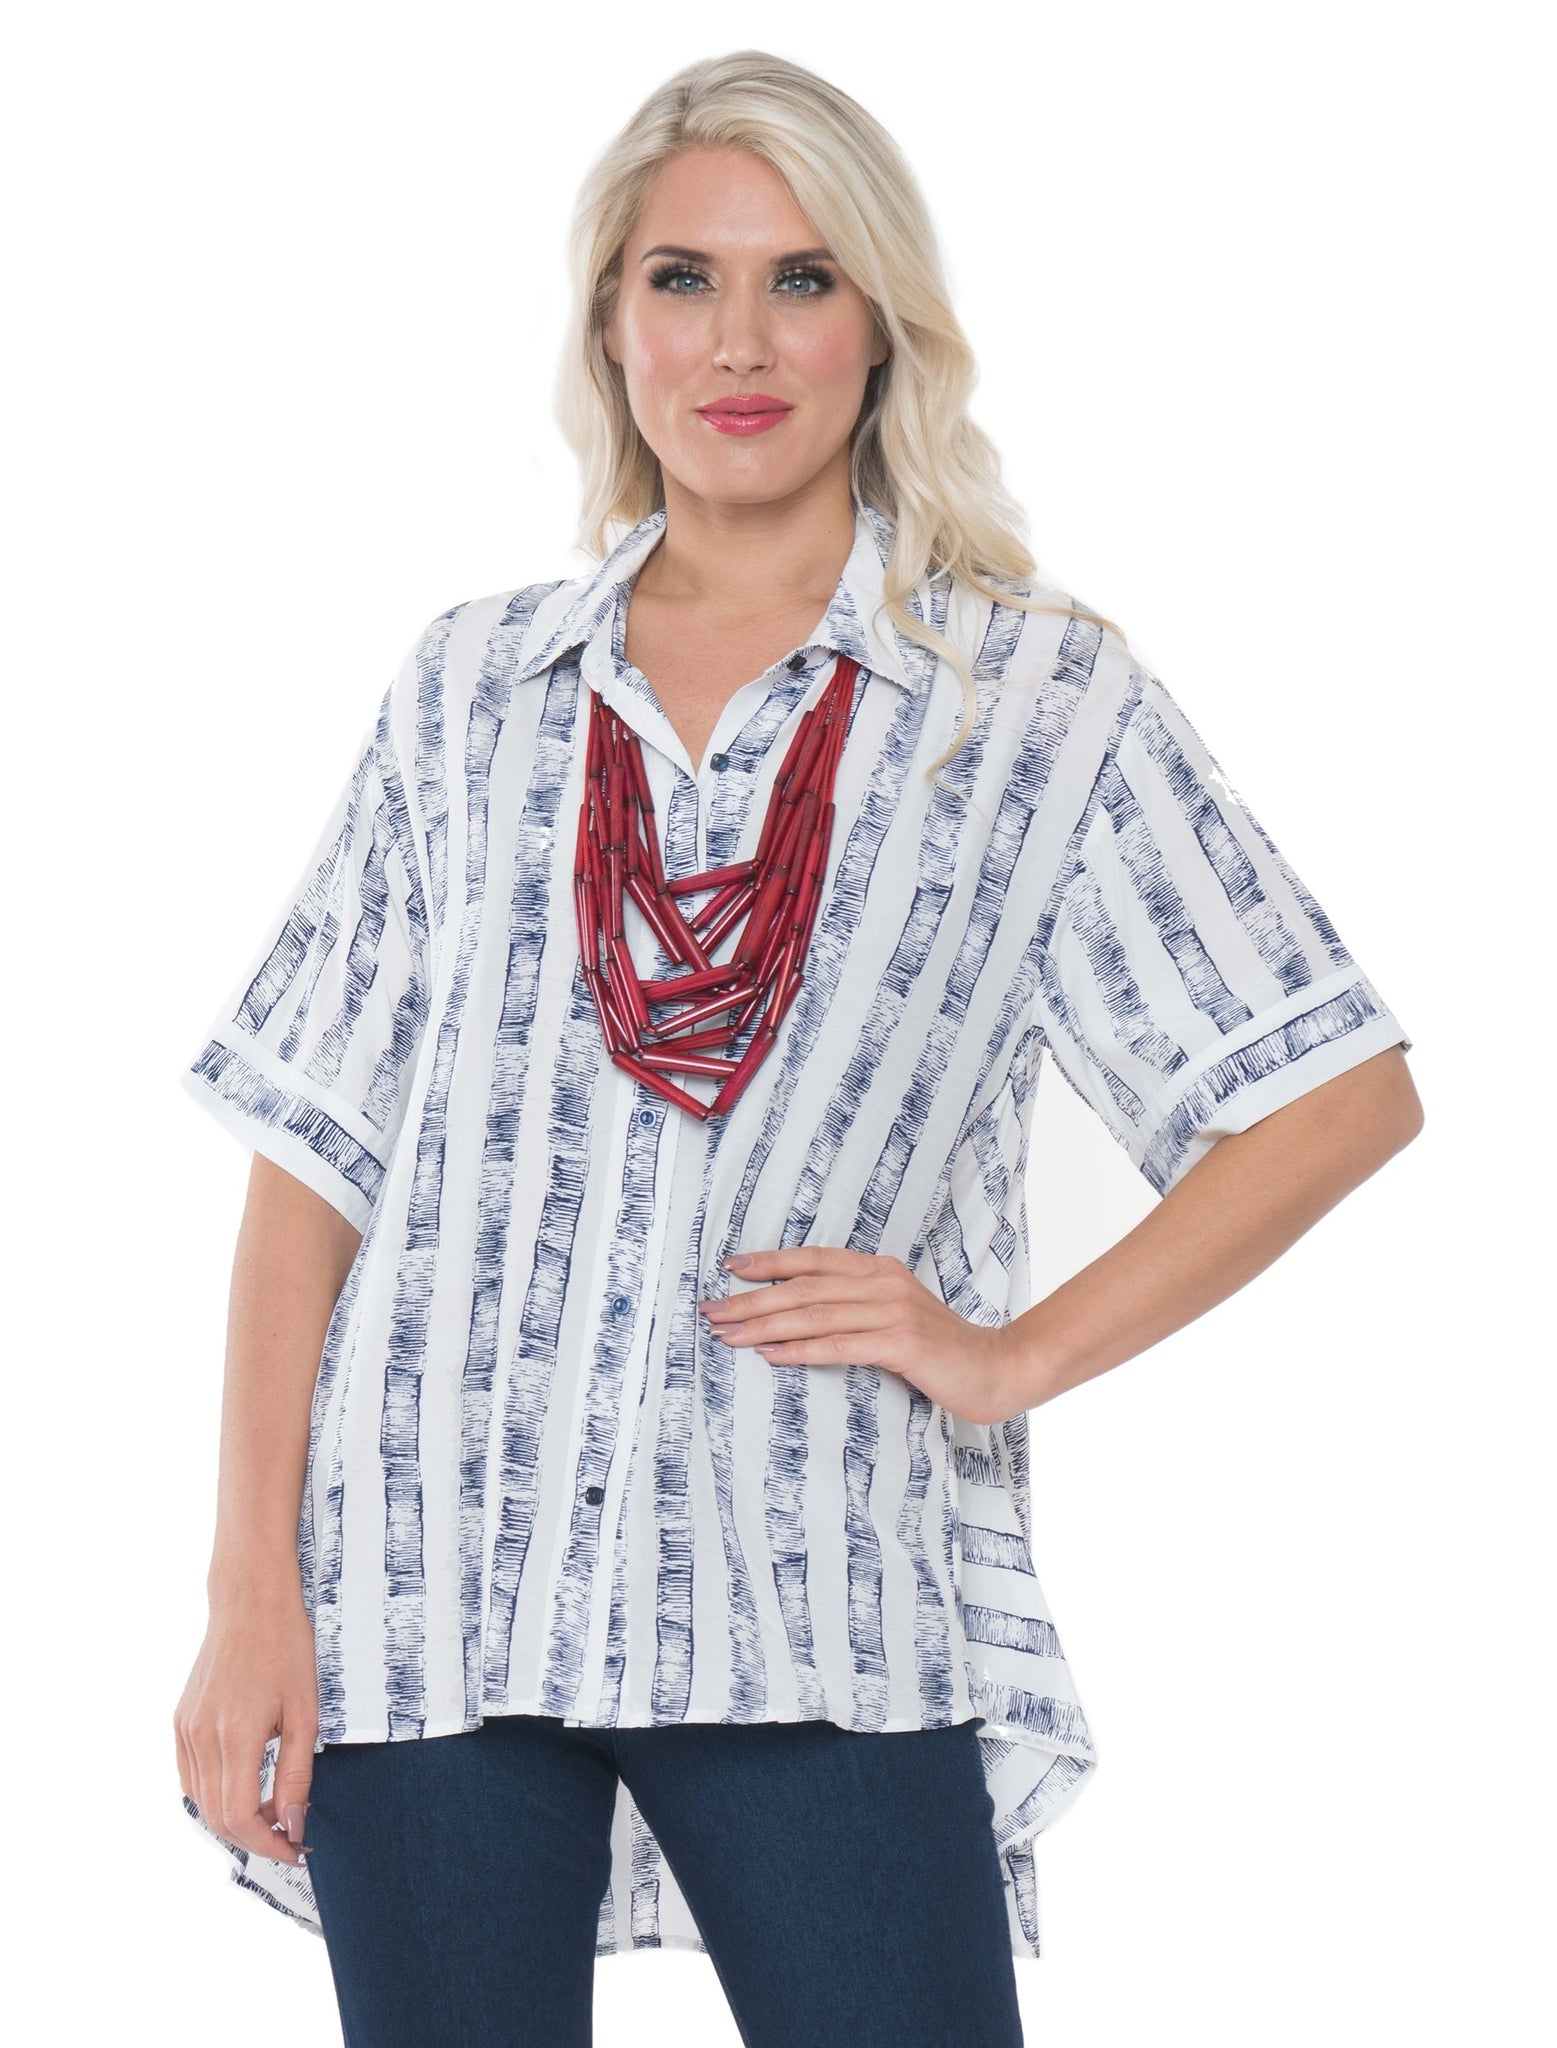 Shirt top by Lior, DAKOTA-9 S M L XL